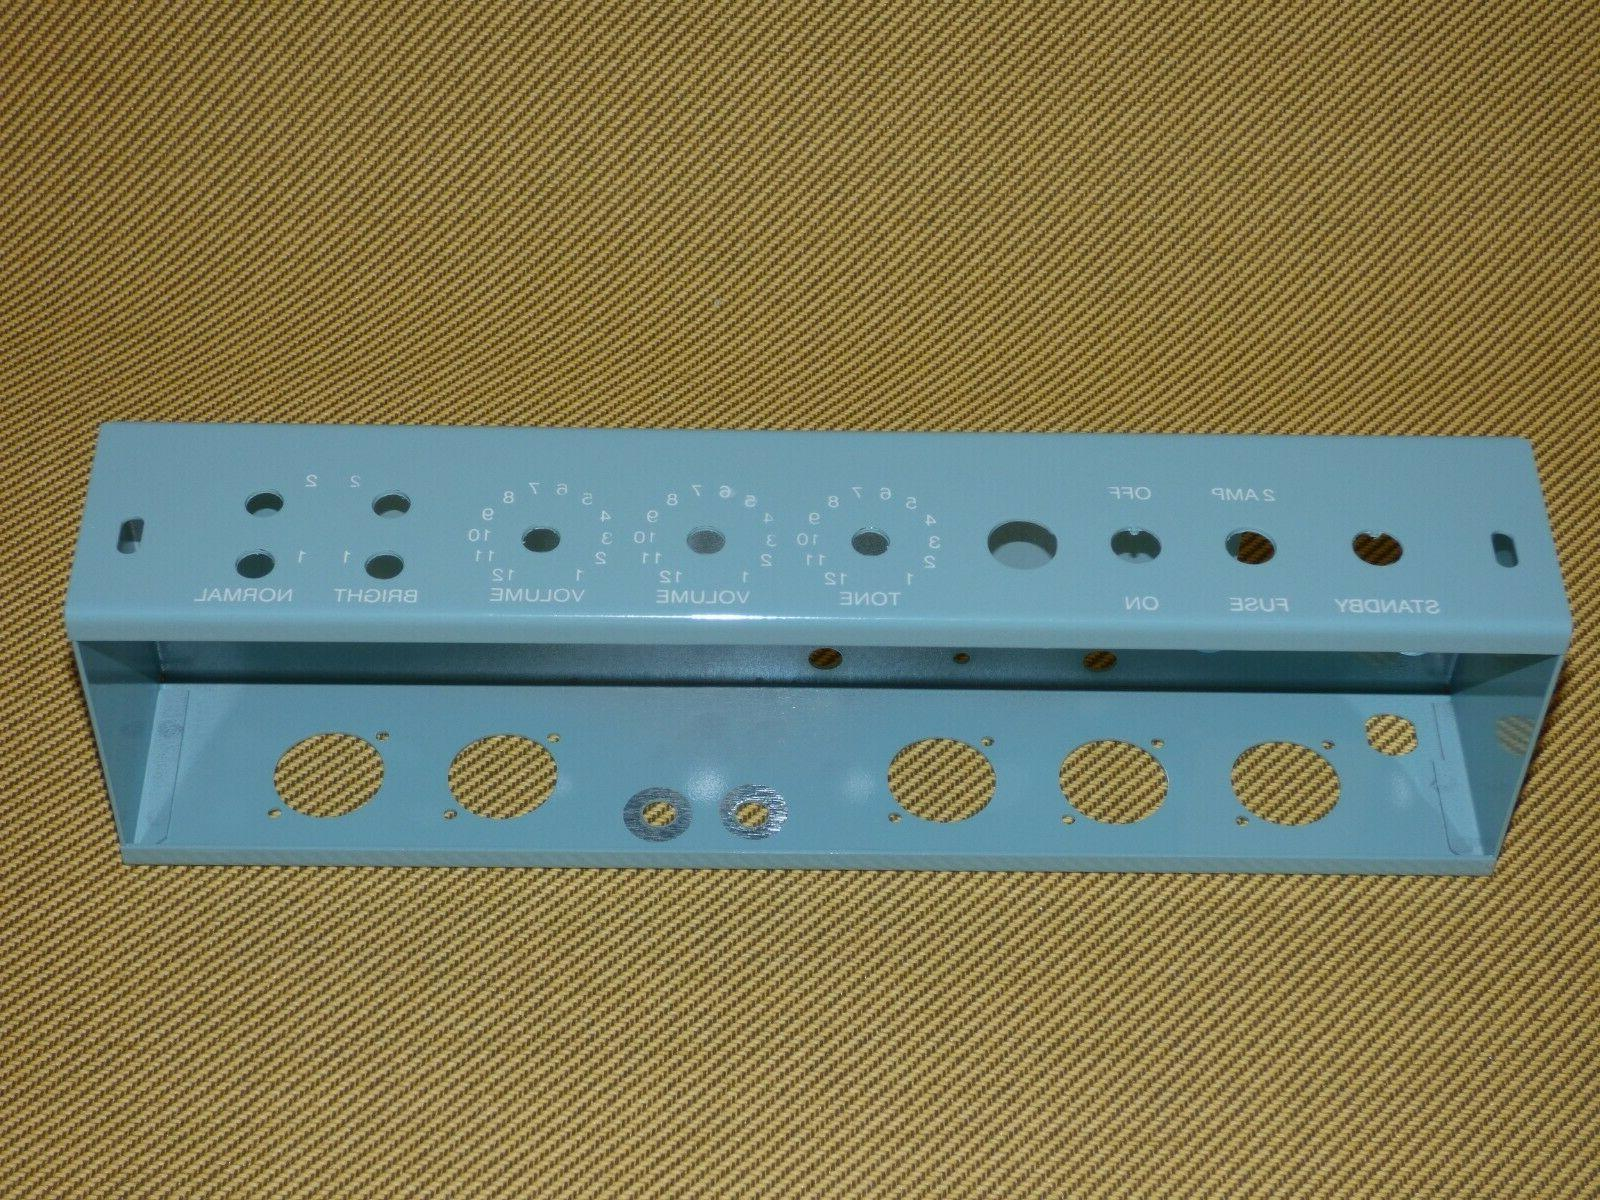 5C3 For DELUXE W/OCTAL PREAMP POWDERCOAT USA made